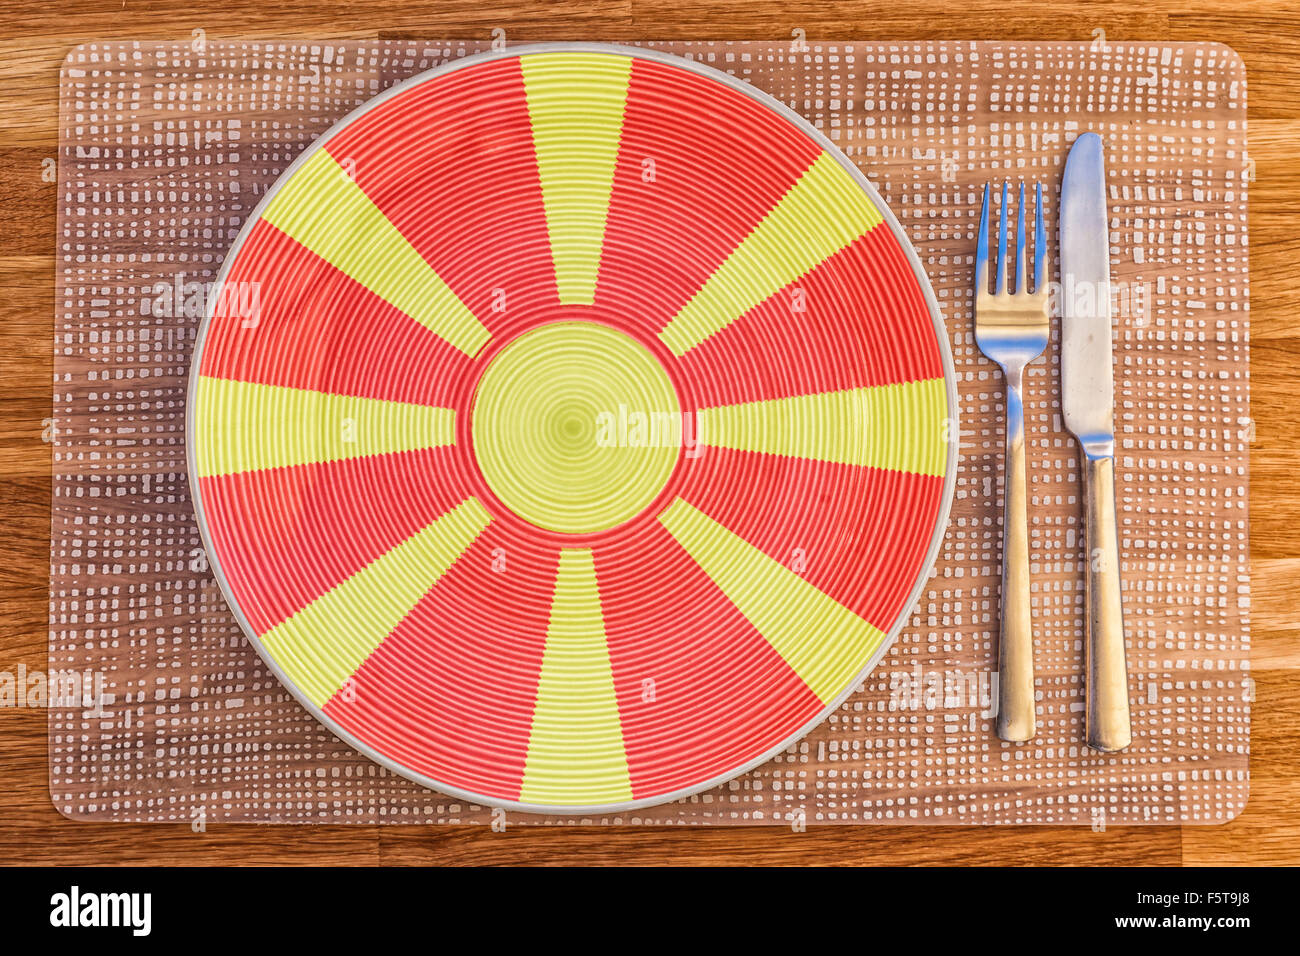 Dinner plate with the flag of Macedonia on it for your international food and drink concepts. - Stock Image